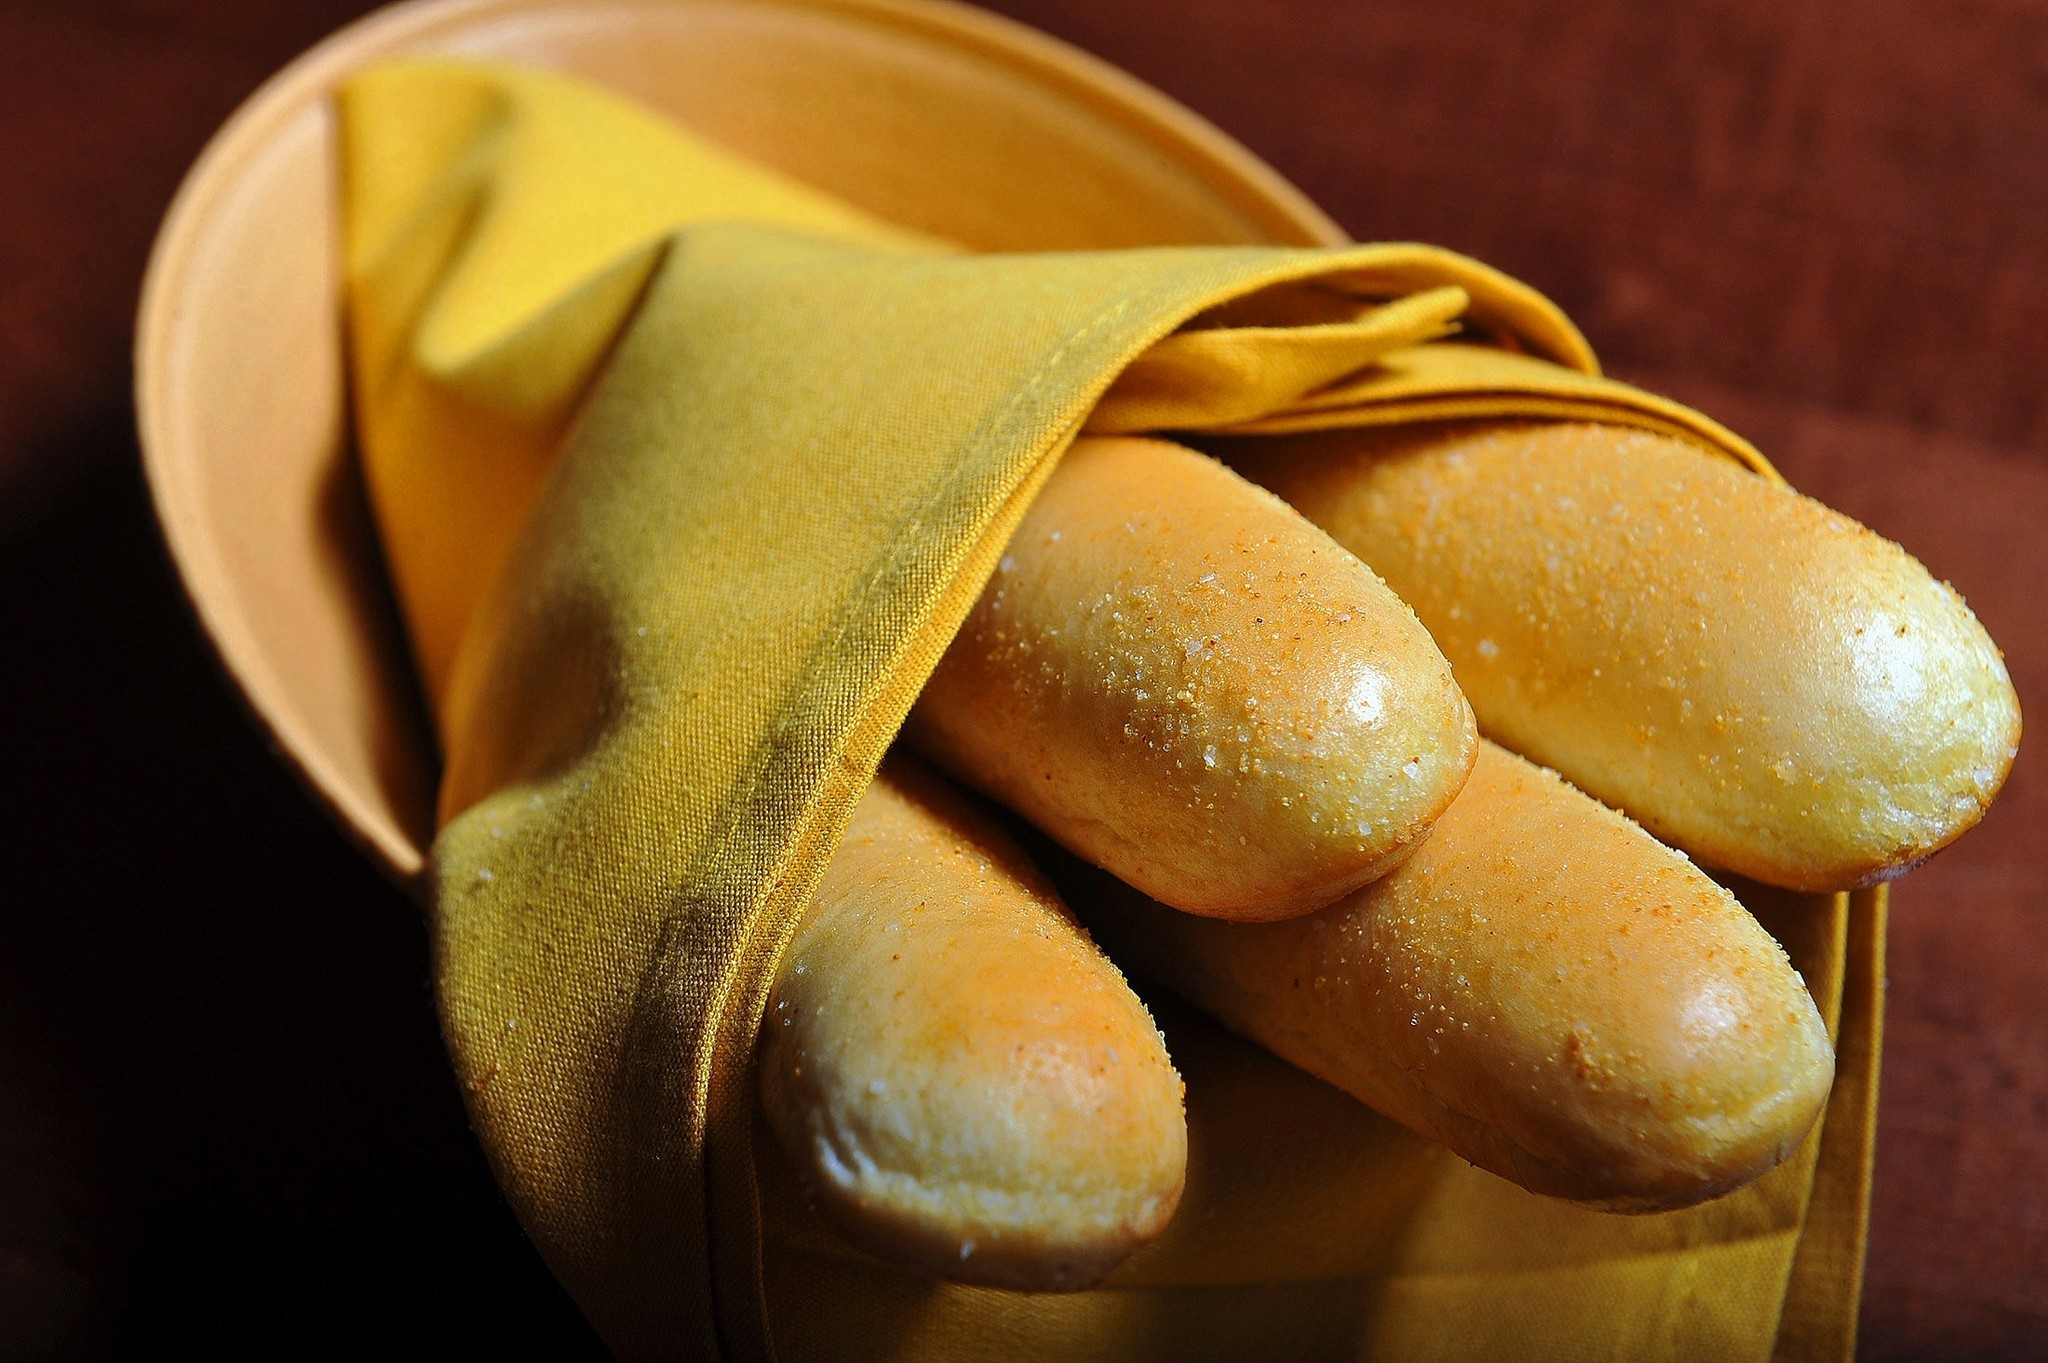 Olive garden breadsticks targeted by activist investor chicago tribune for How many carbs in olive garden breadsticks